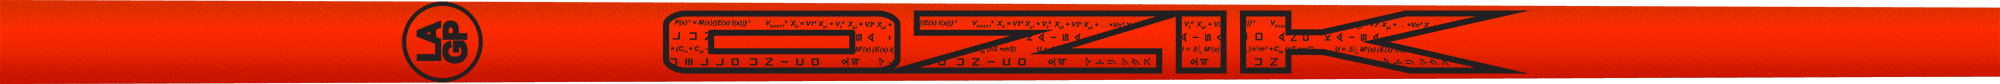 Ozik White Tie: Ferrari Red Black Textured - Wood 40 A